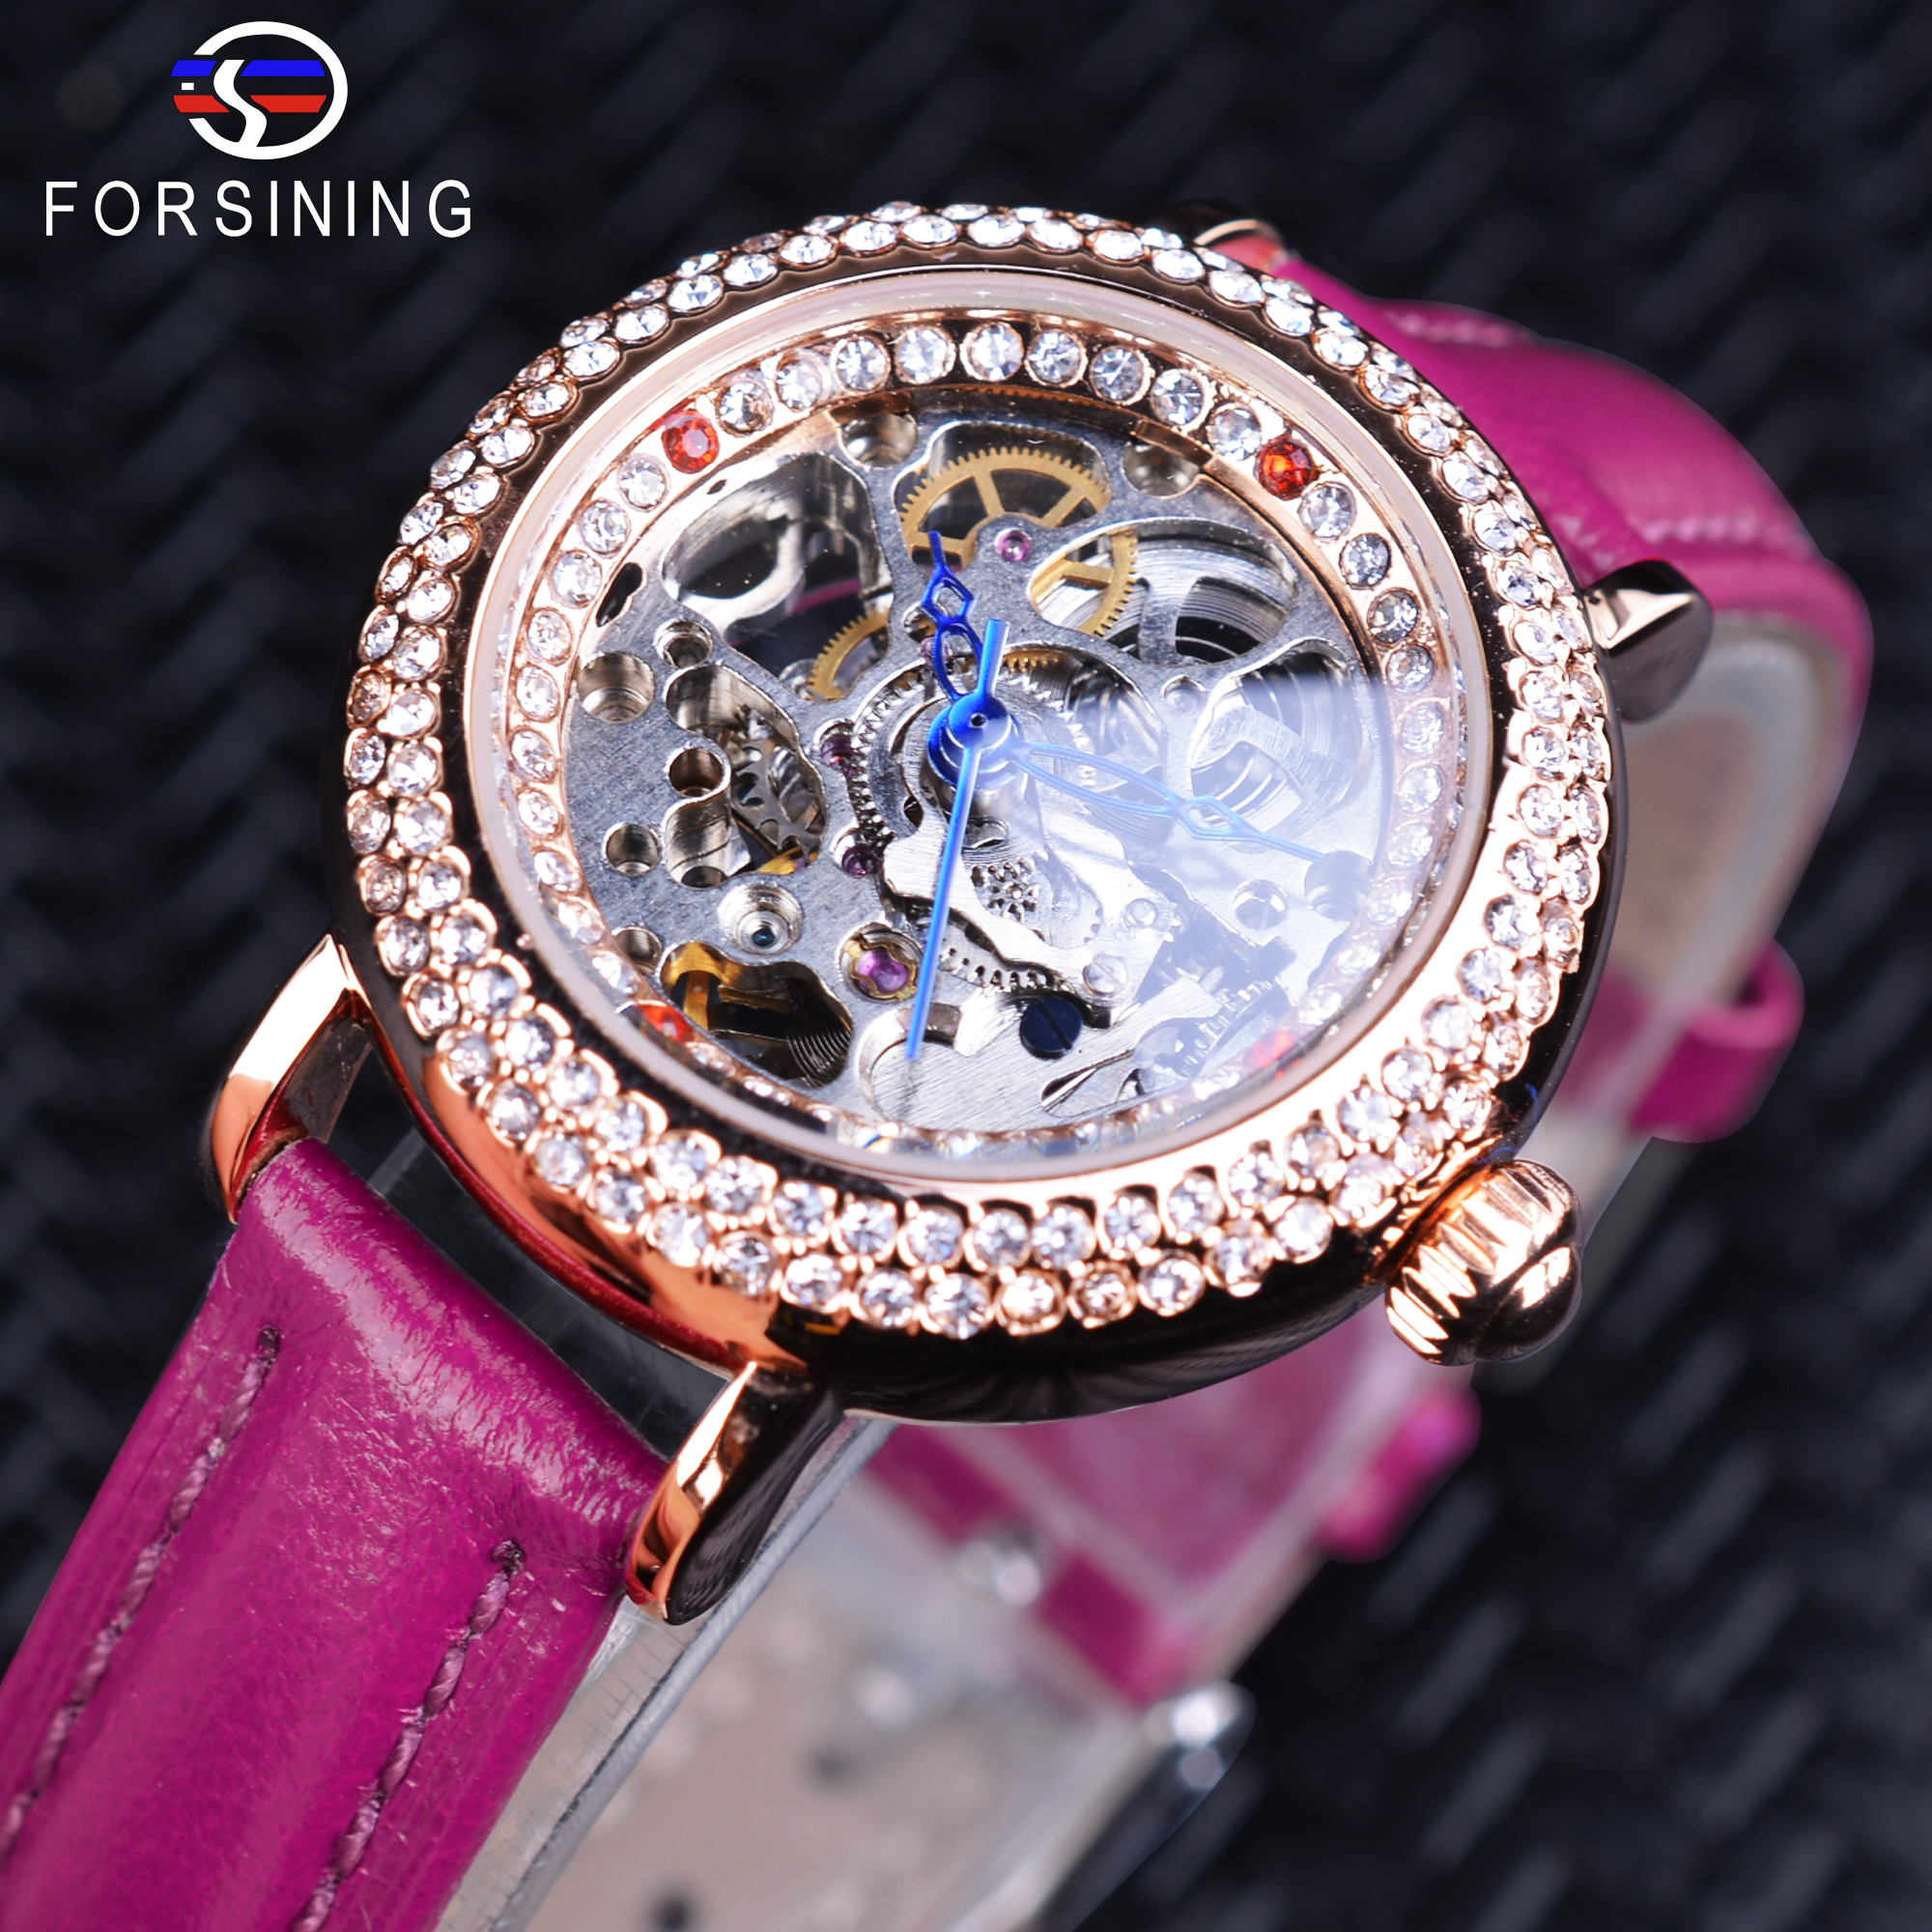 Forsining Diamond Display Purple Genuine Band Ladies Small MILAN Street Women Casual Automatic Skeleton Wrist Watch Clock Female